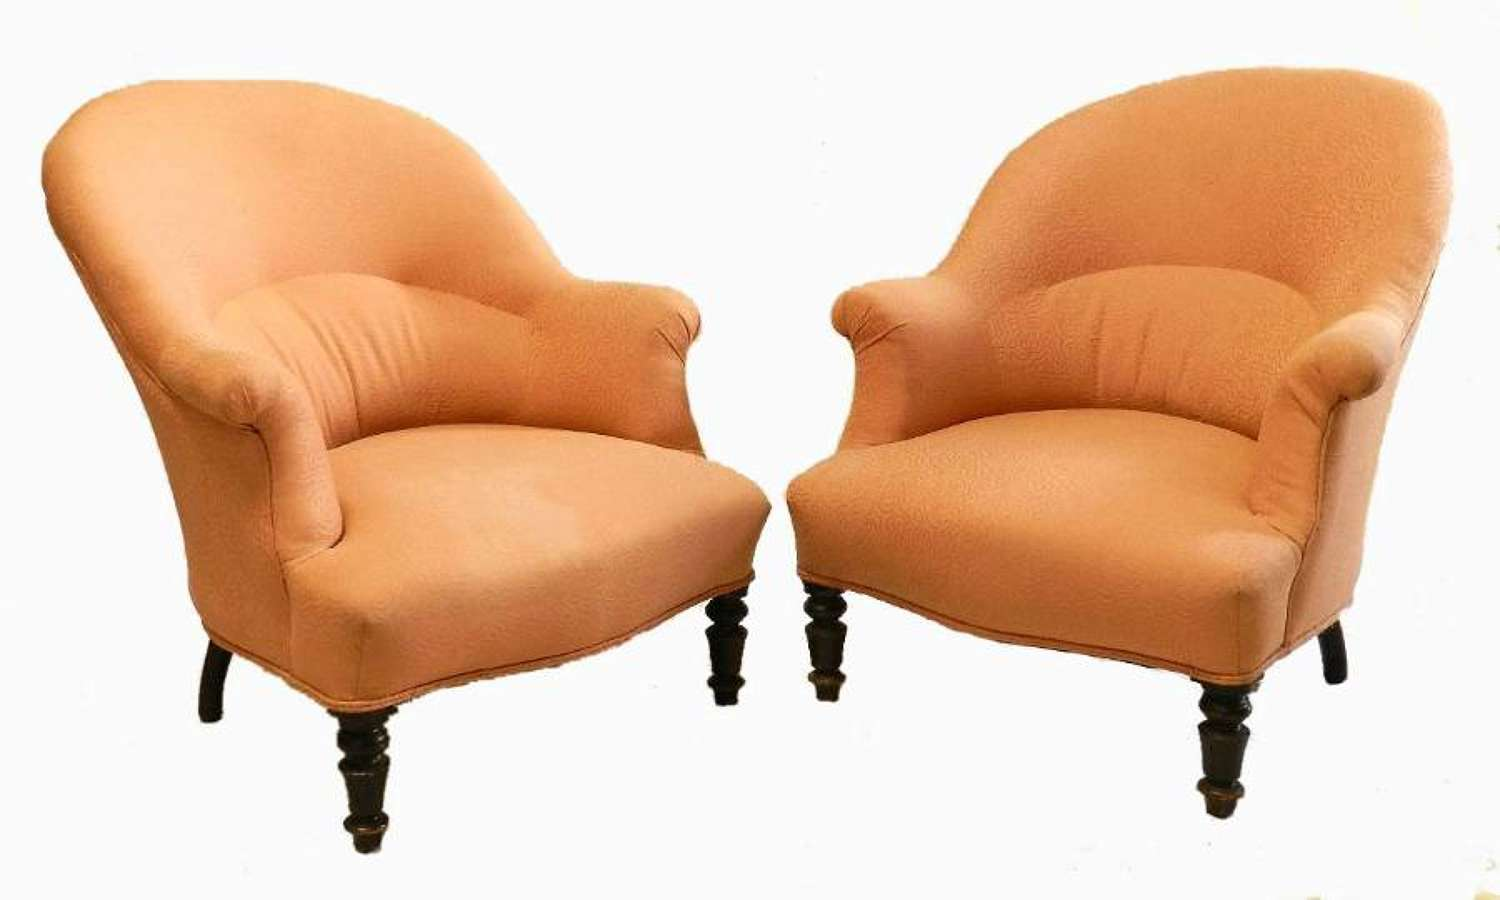 Pair of C19 Napoleon III French Armchairs Fauteuil Slipper Chairs